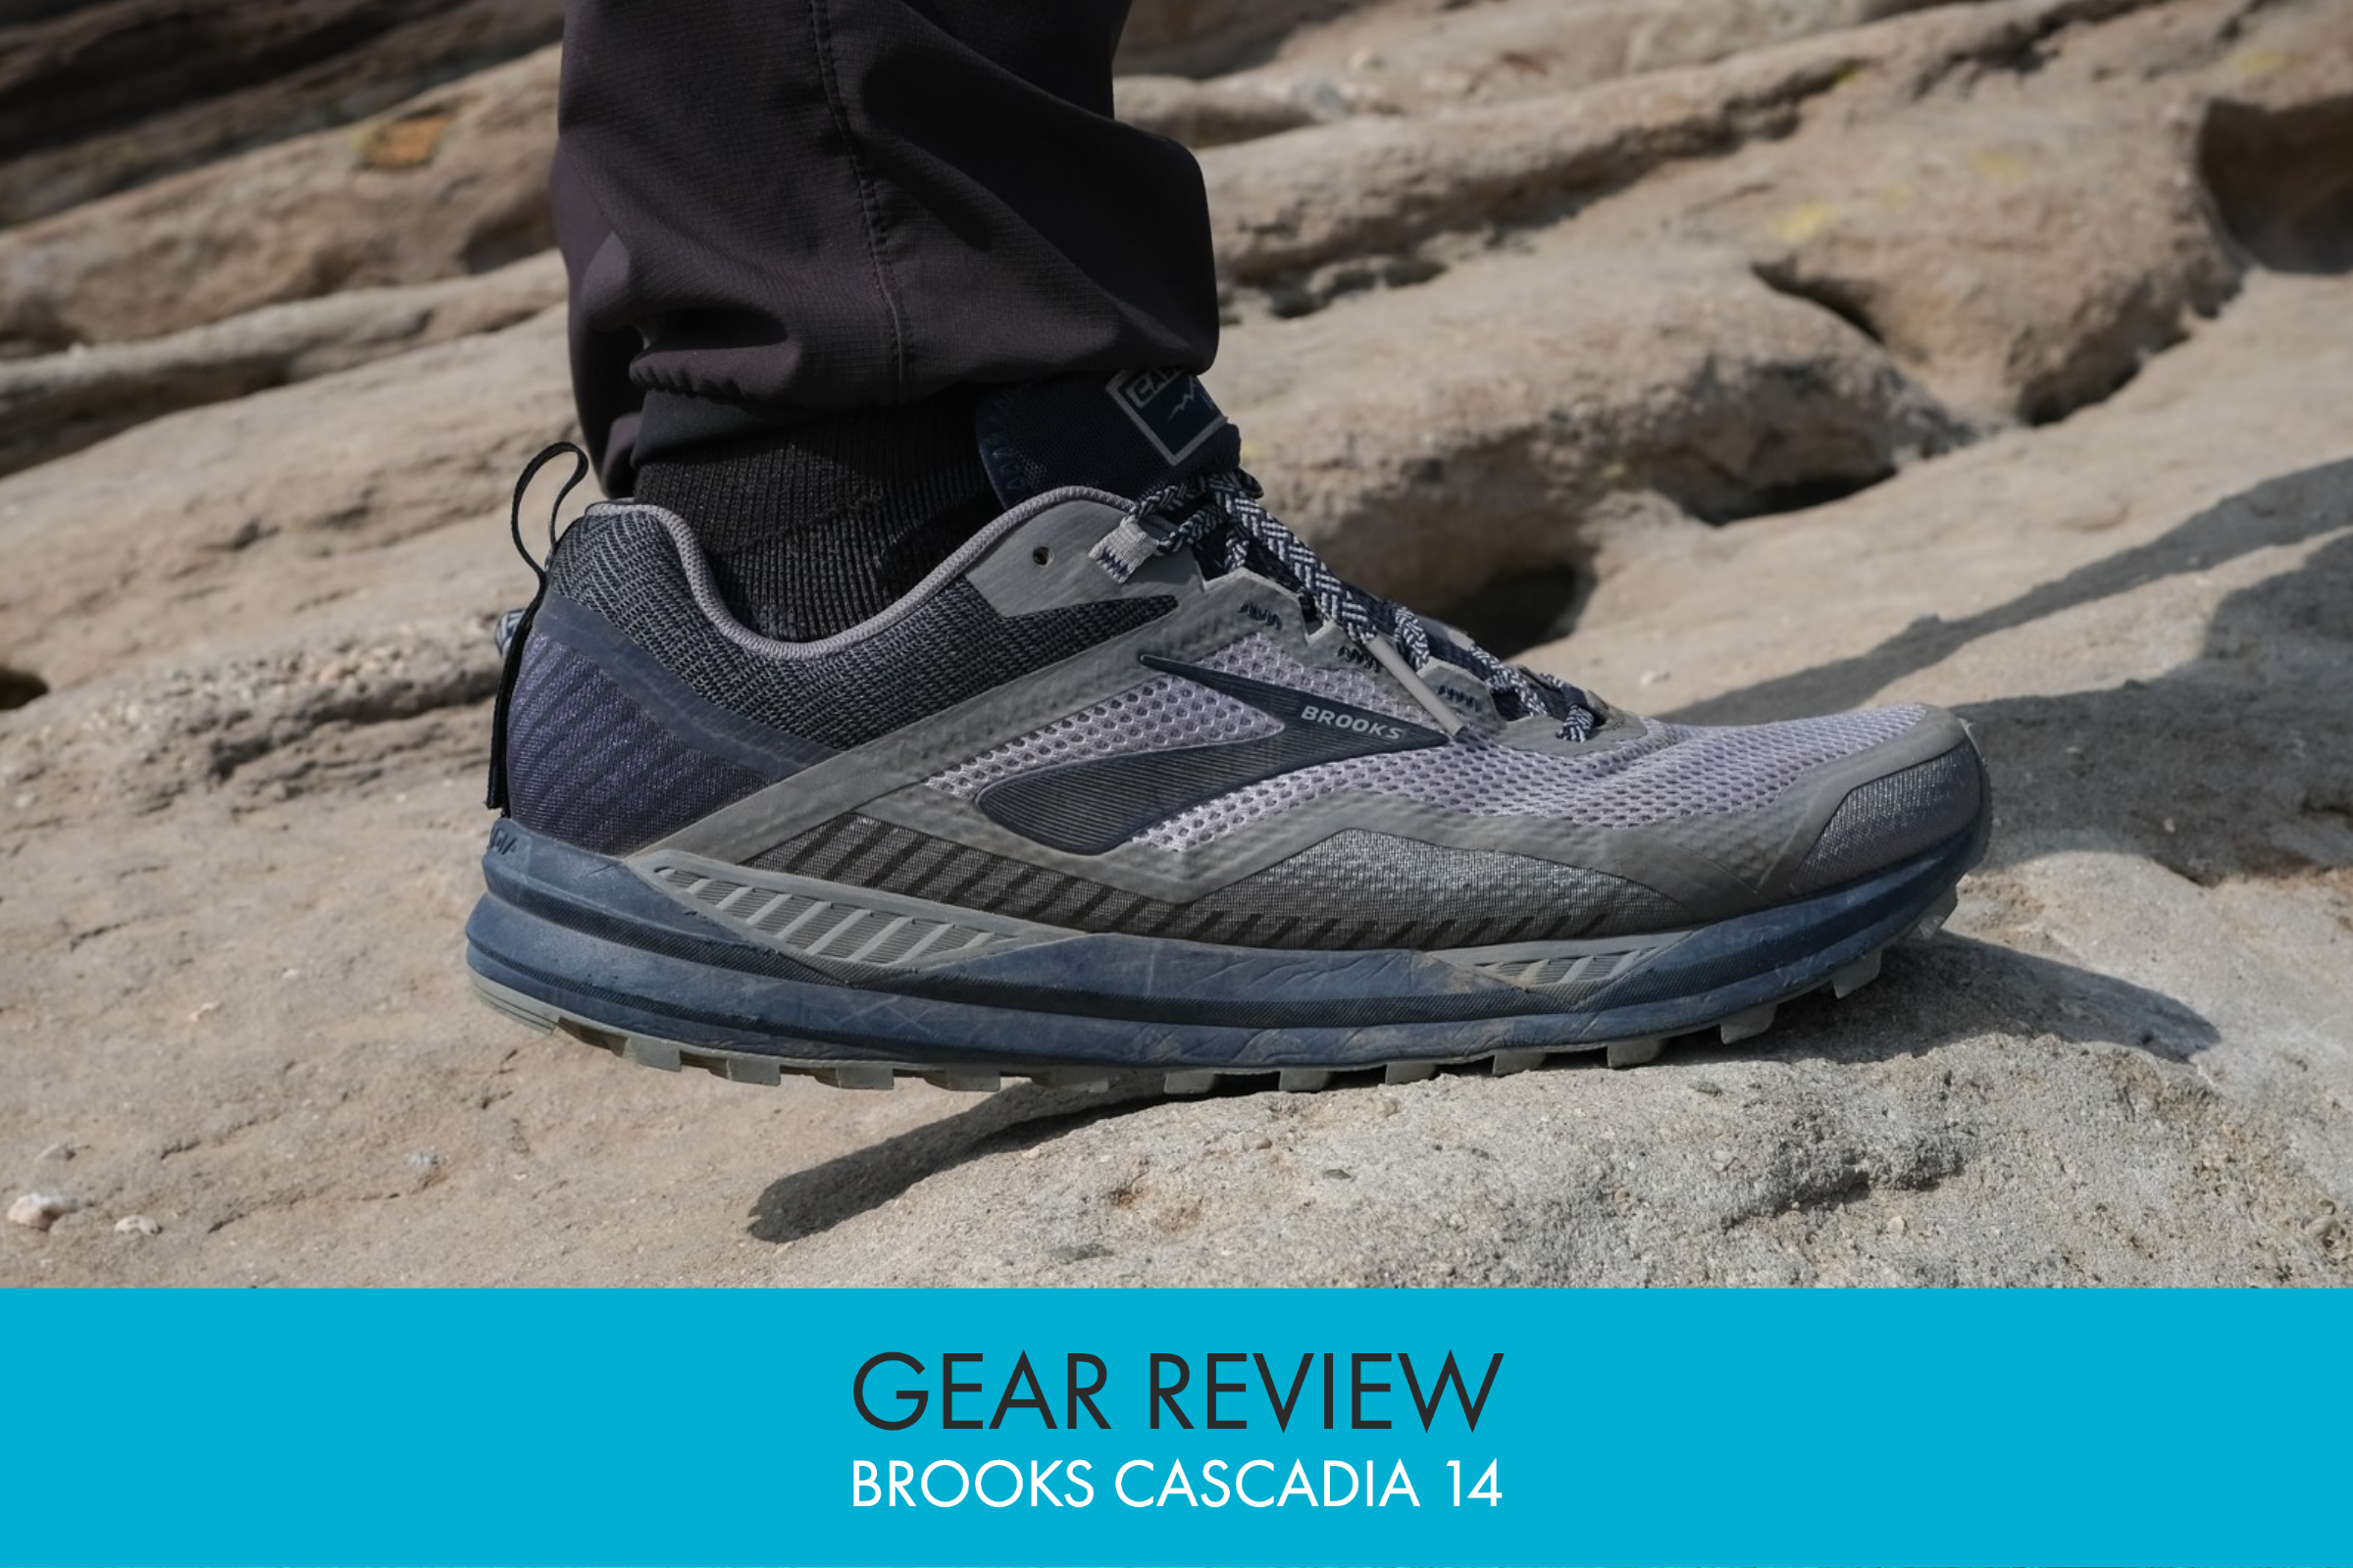 Gear Review: Brooks Cascadia 14 Trail